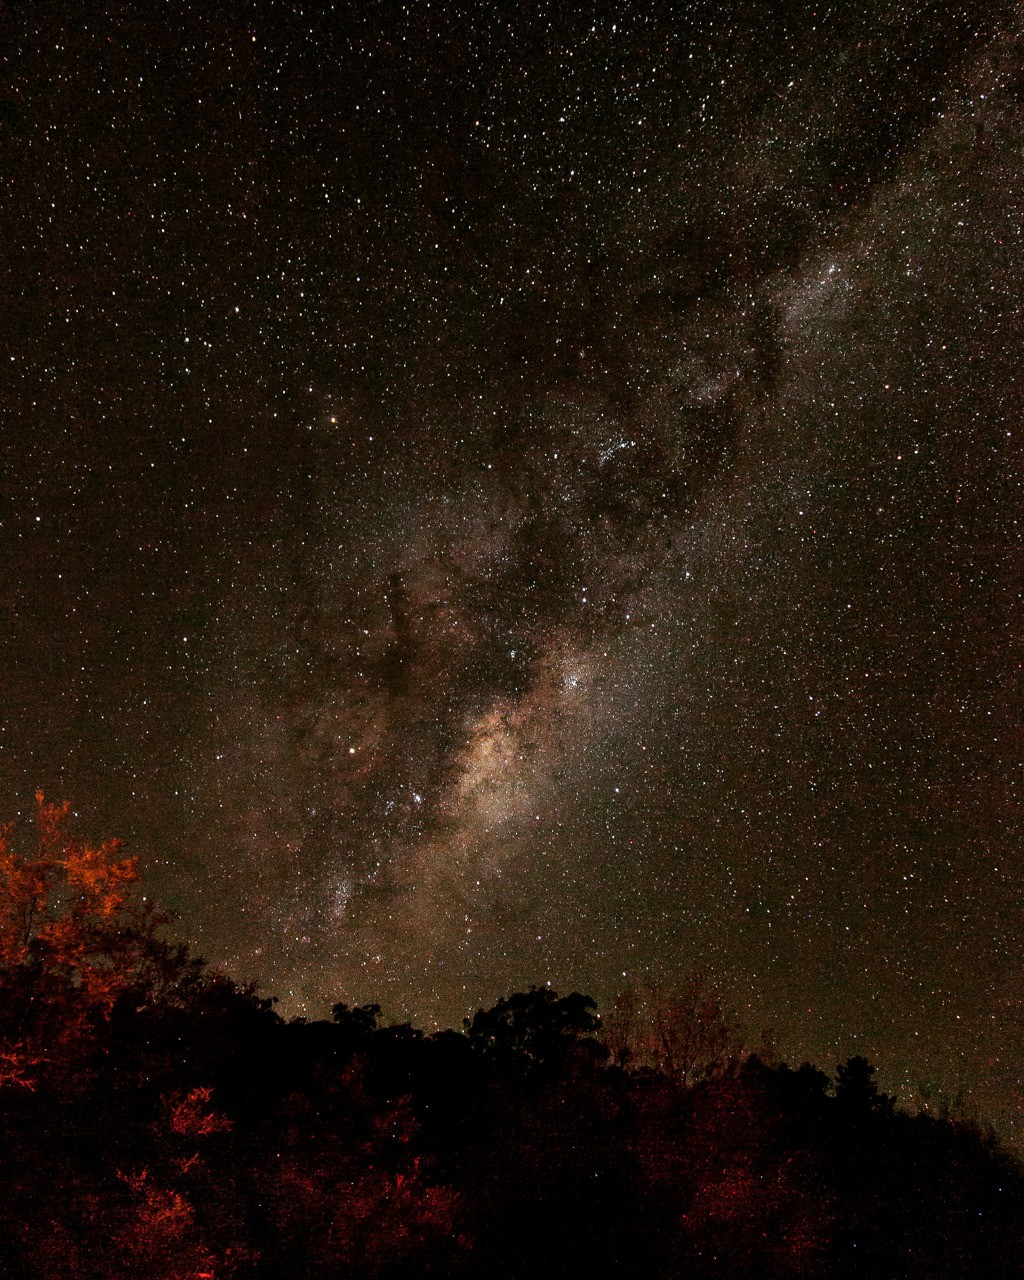 Rochester Project pic of the Milky Way - NSW Australia